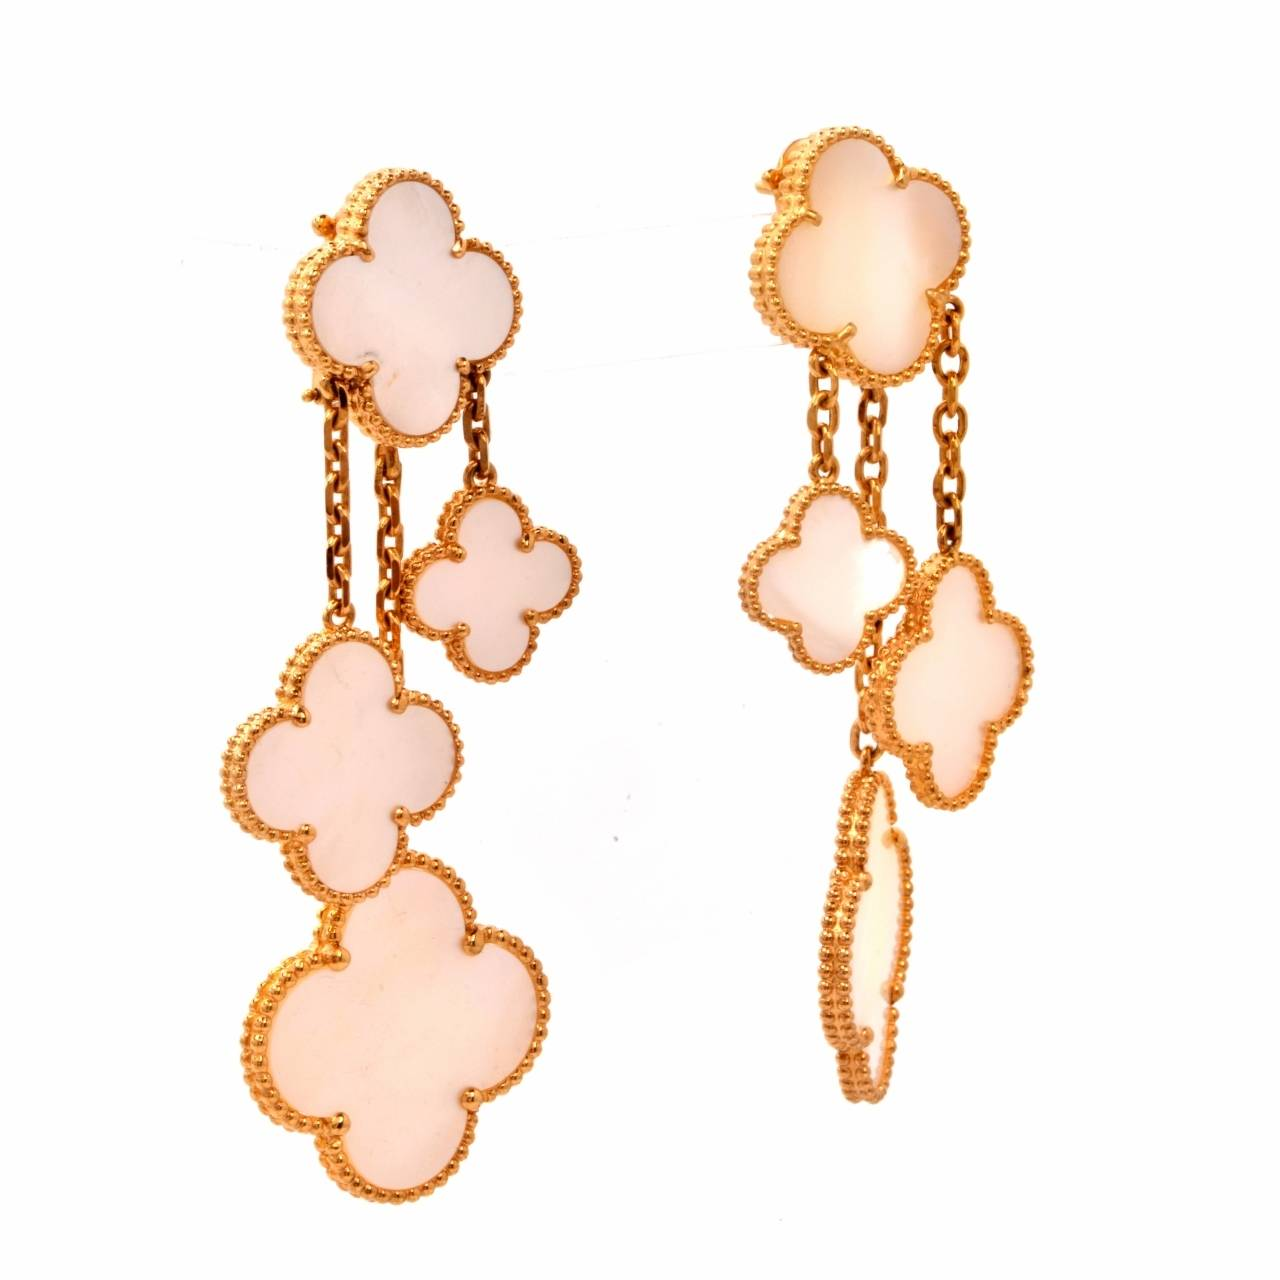 Van Cleef & Arpels VCA Alhambra Collection Mother-of-Pearl Gold Earrings 2